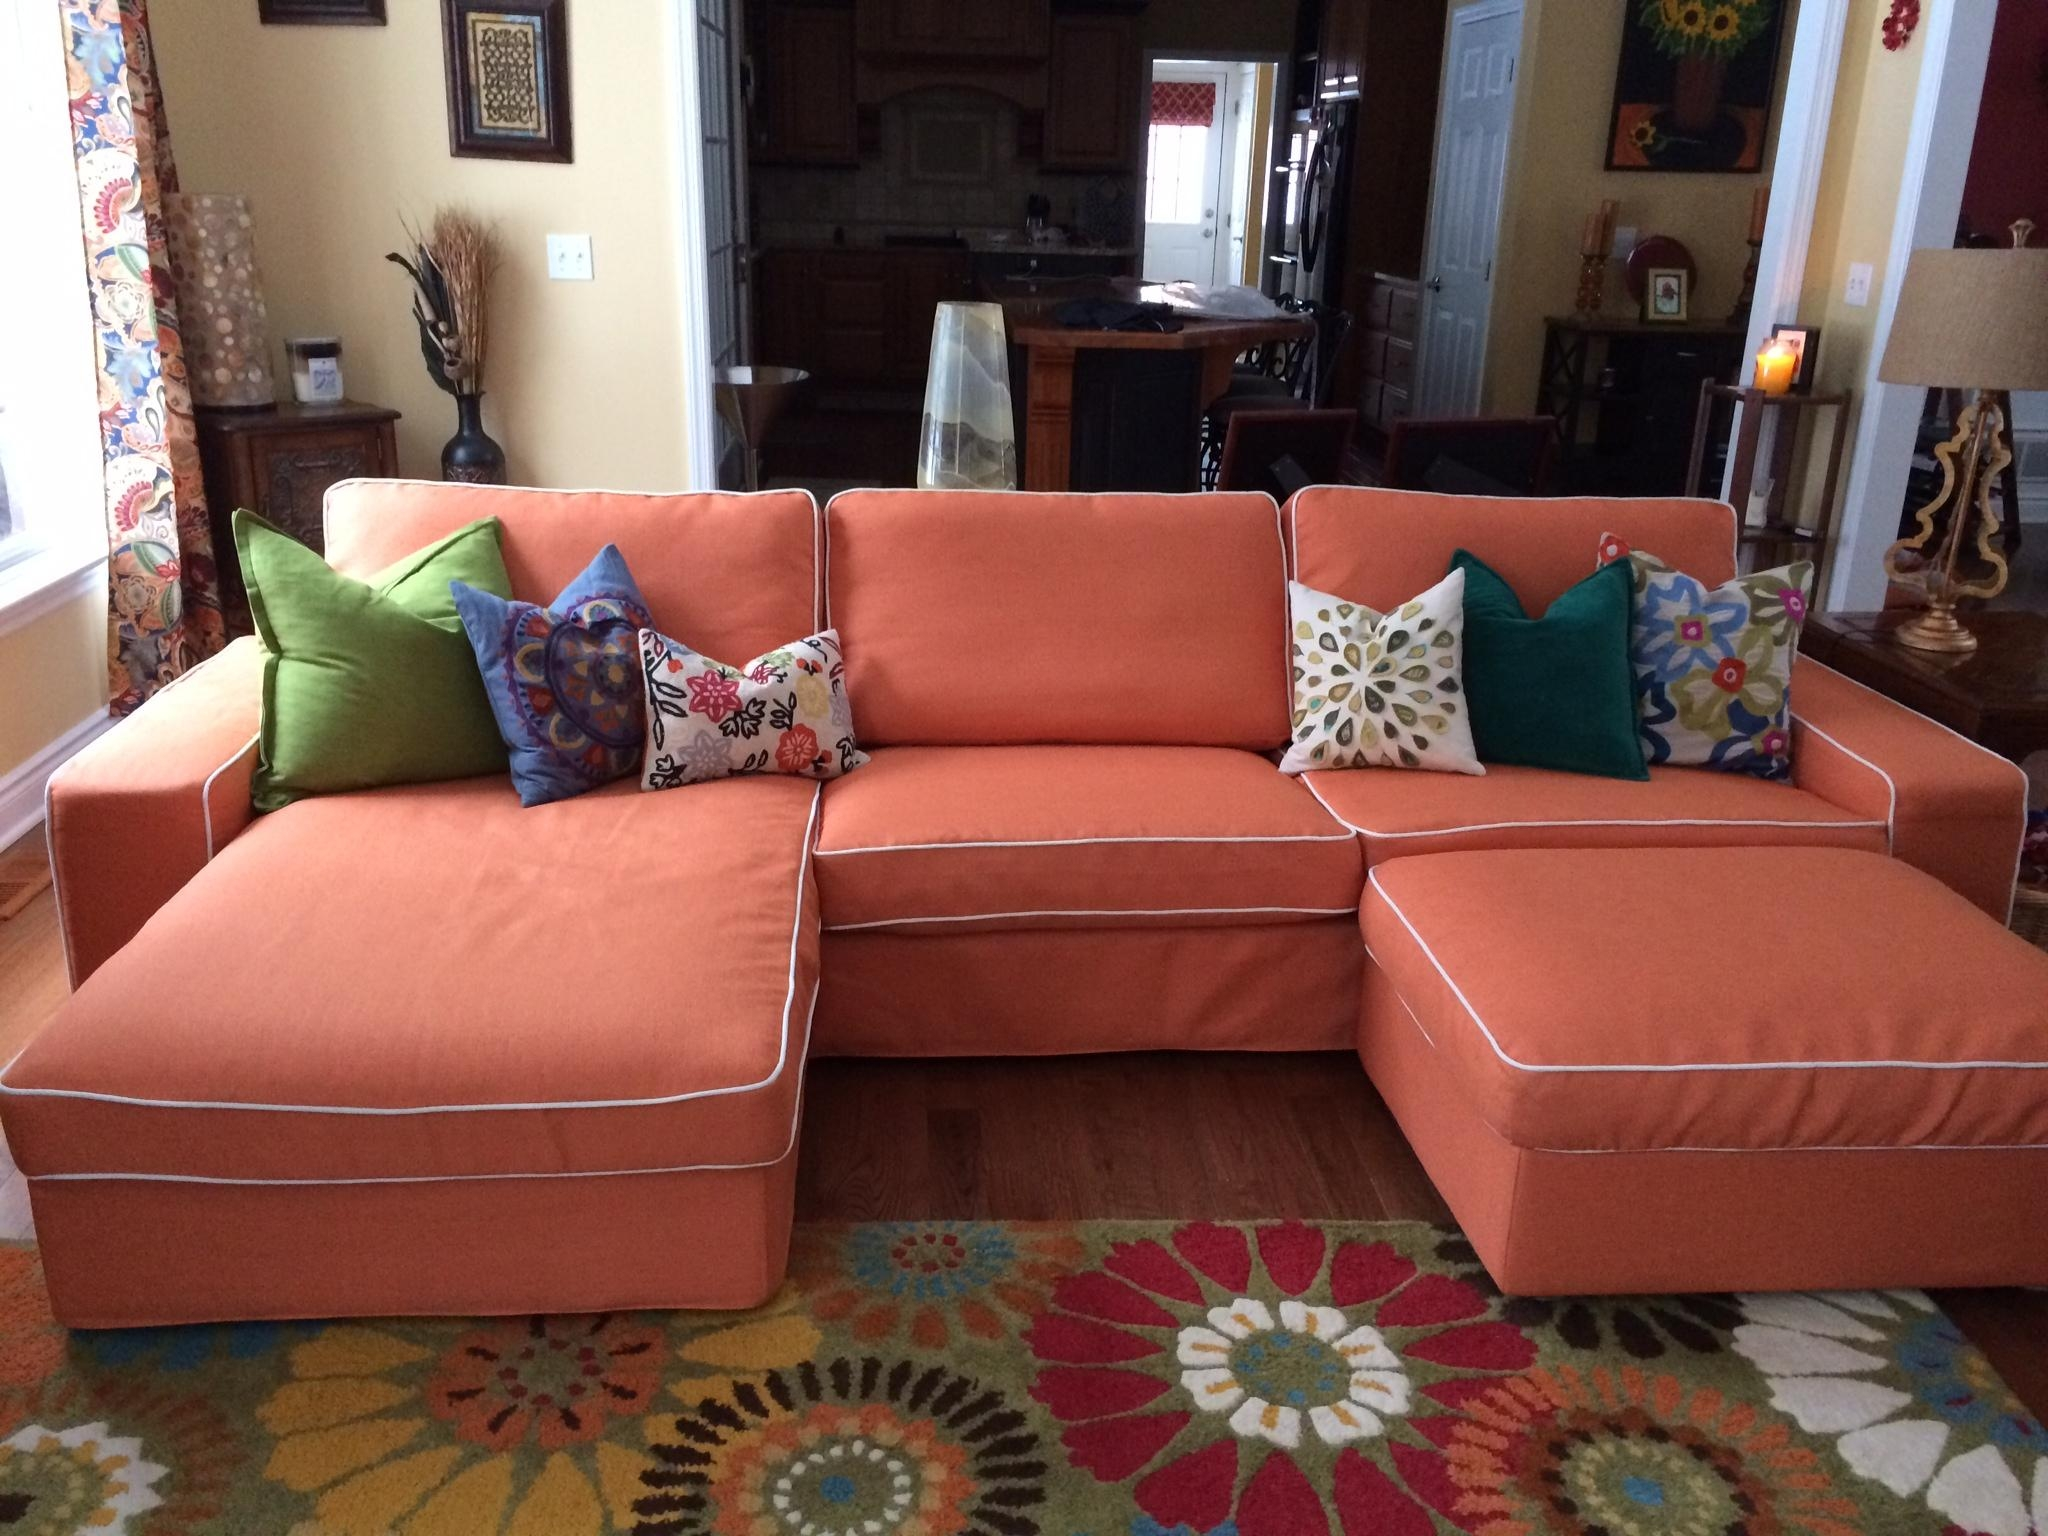 Ikea Kivik Sofa Series Review – Comfort Works Blog & Design Throughout Lillberg Sofa Covers (View 8 of 20)